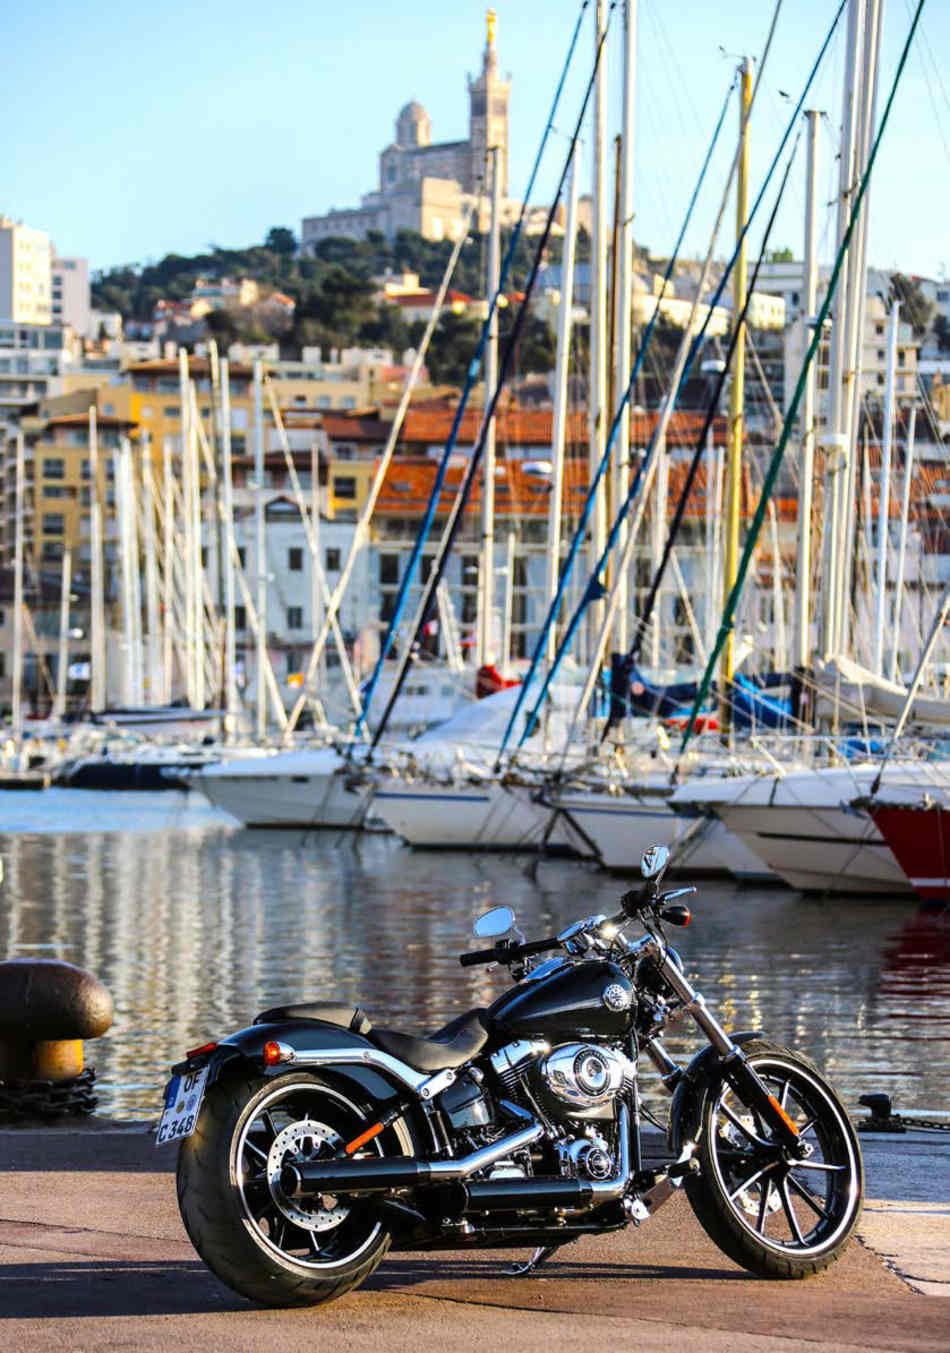 The Breakout parked on its sidestand on the seafront of a French harbour, with yachts moored in the background.